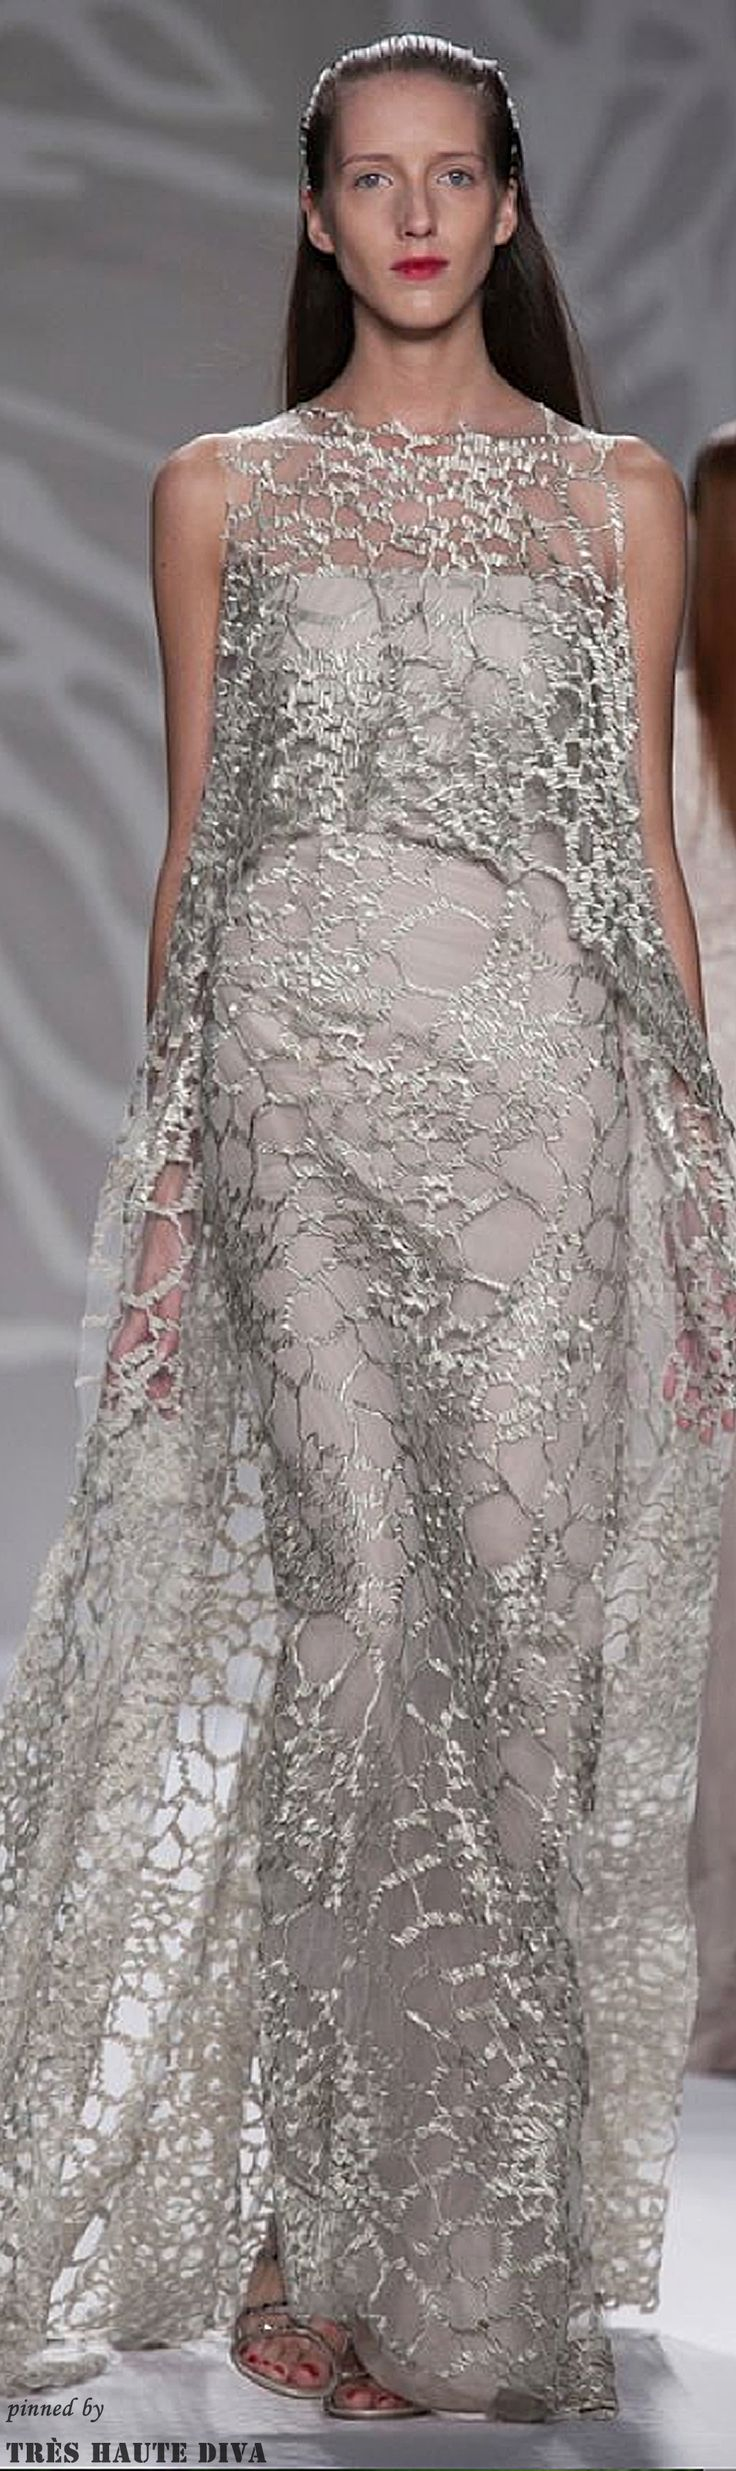 #NYFW Monique L'huillier Spring 2014 RTW http://www.nytimes.com/fashion This could be a good way to change the neutral dress just by adding a lace overlay. The options are endless.